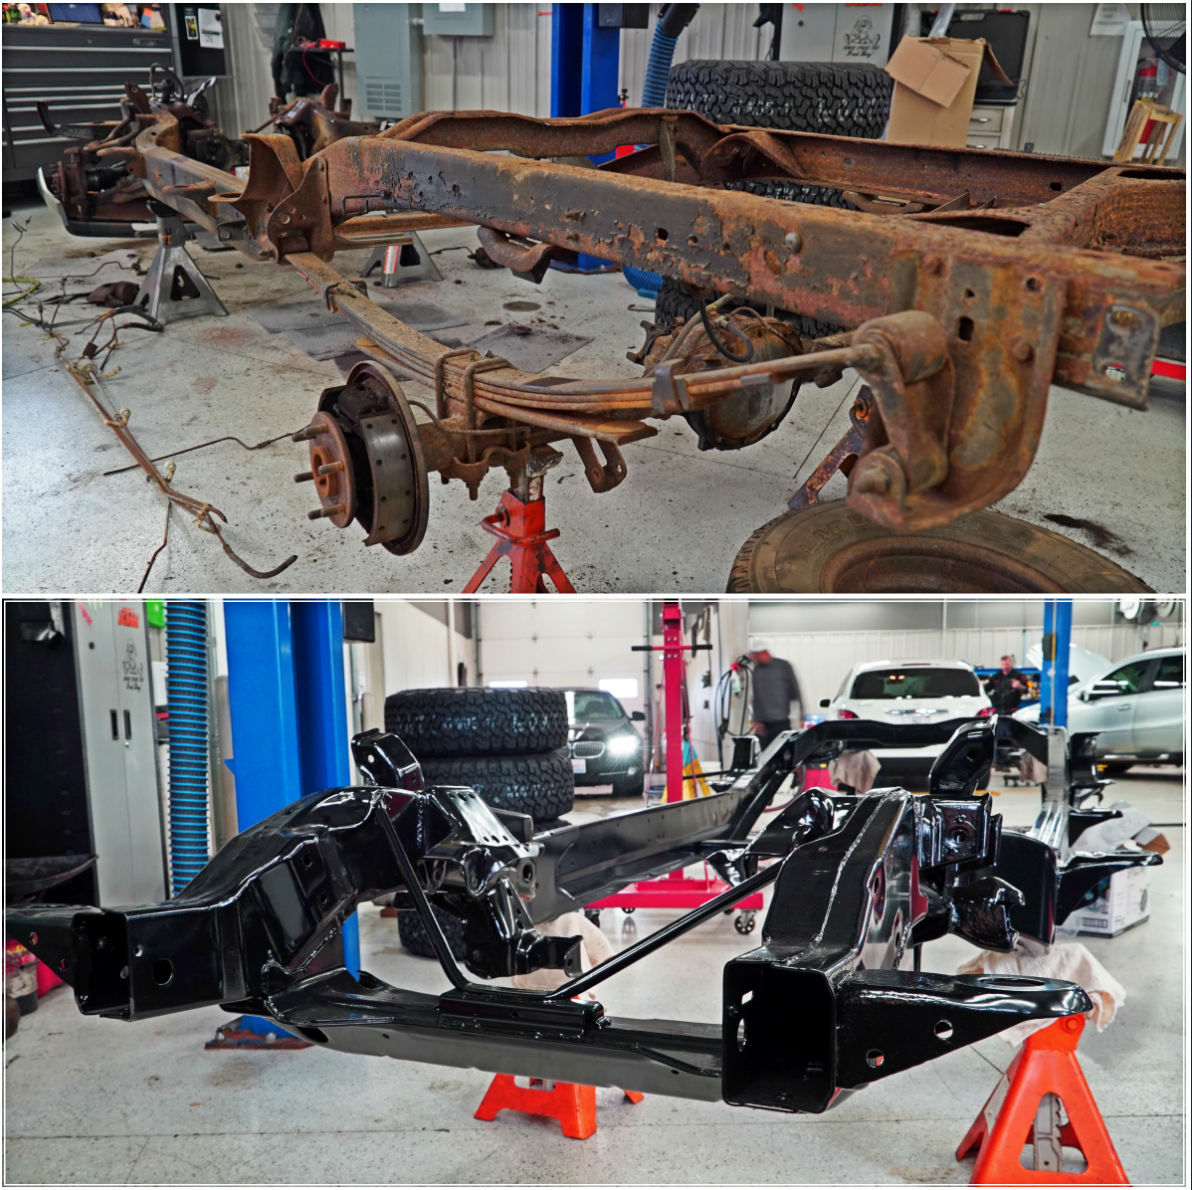 The Chassis From The 90 S Chevy Truck Restoration We Ve Been Working On Was Removed And Sent Off To Be Powder Coated Check Out Chevy Trucks Chevy Classic Cars